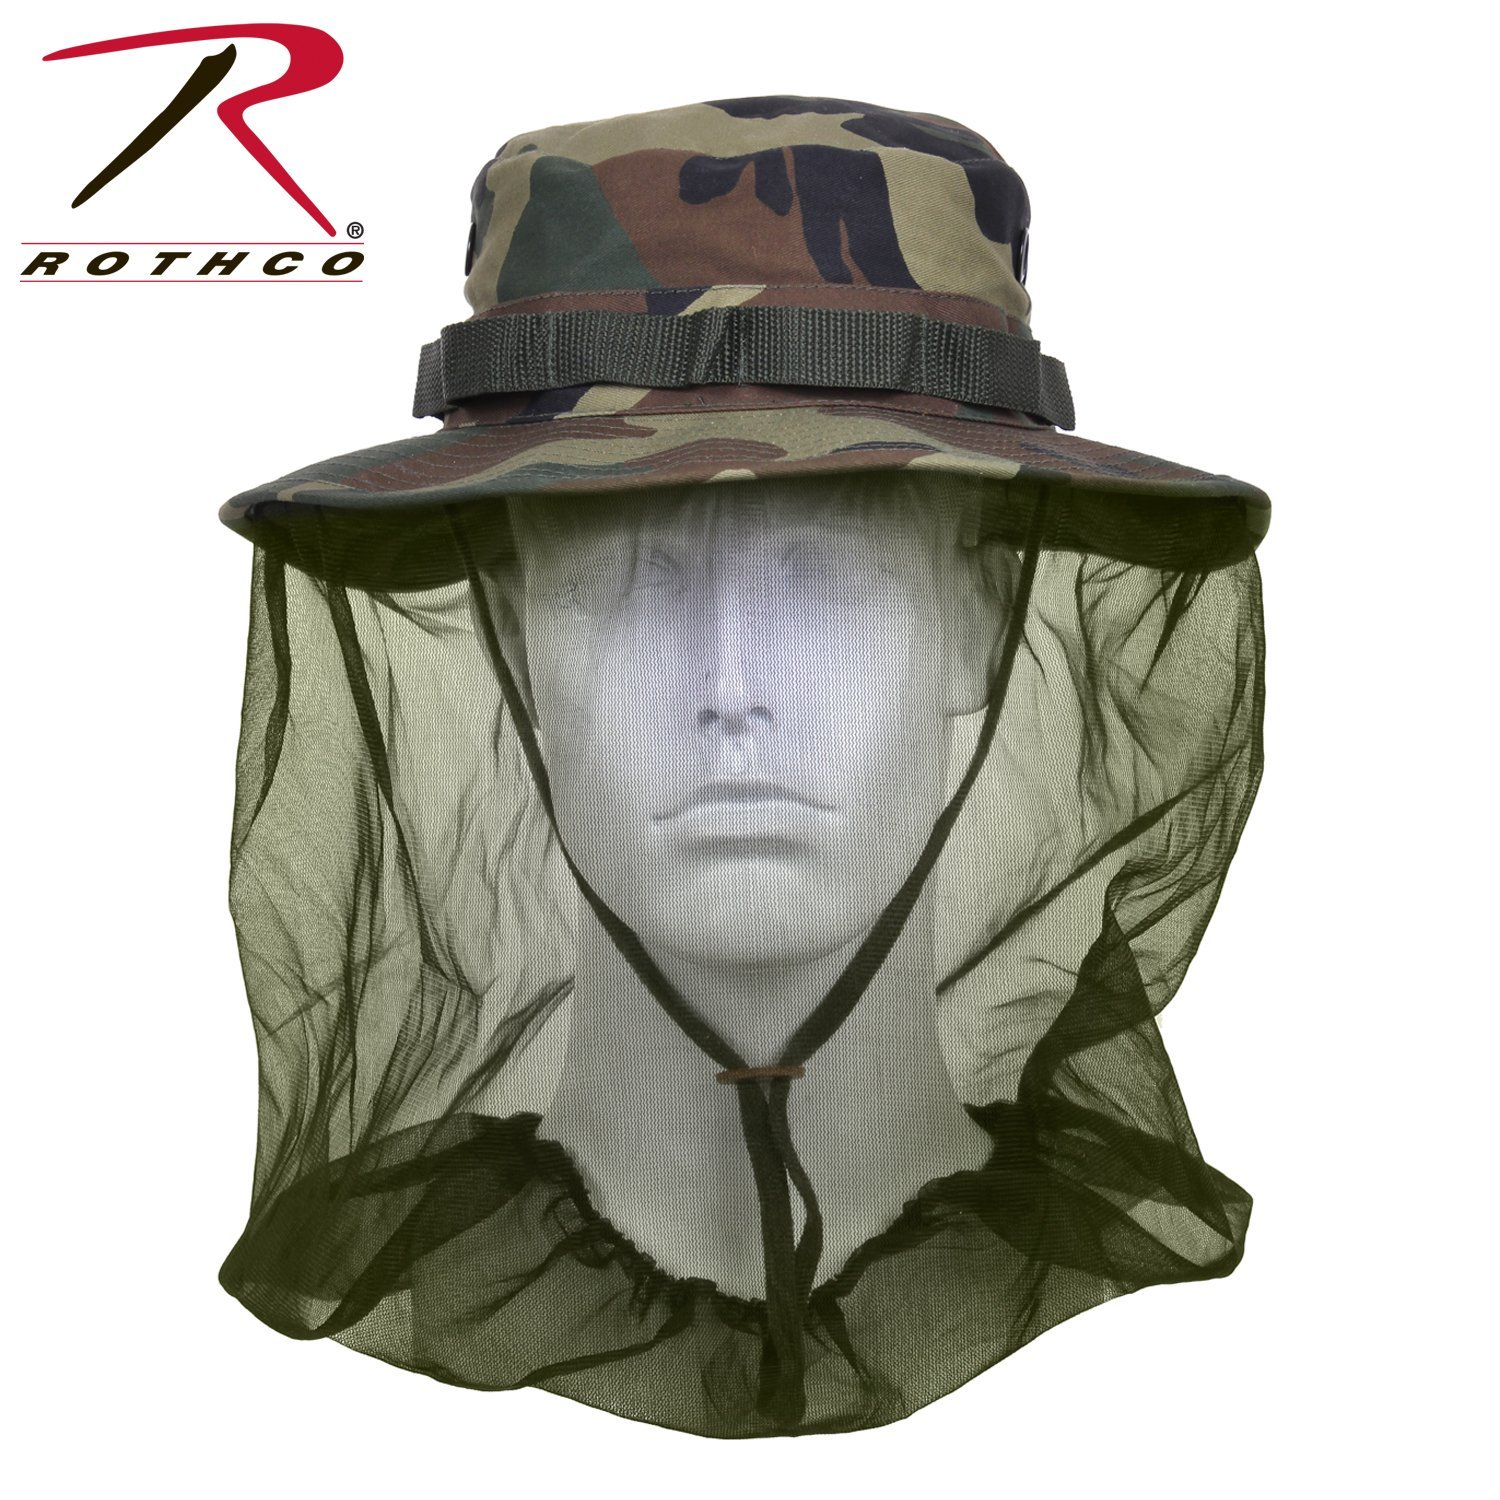 Rothco Boonie Hat With Mosquito Netting - Woodland Camo   Olive Drab d37f068d0c2